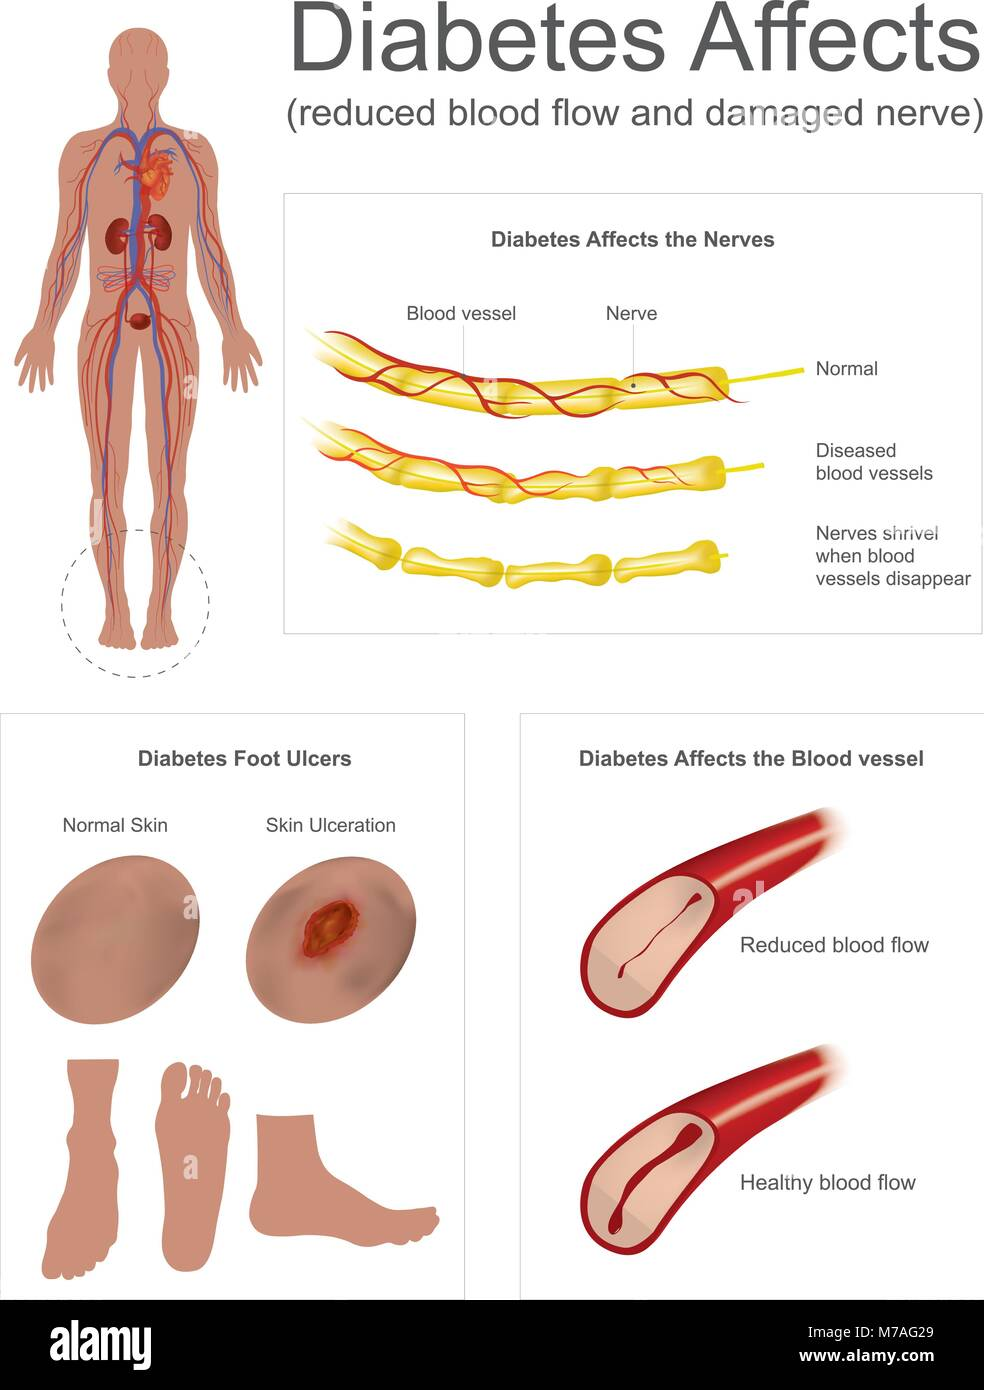 The Nerves in leg shrivel when blood vessels disappear. Foot ulcers ...